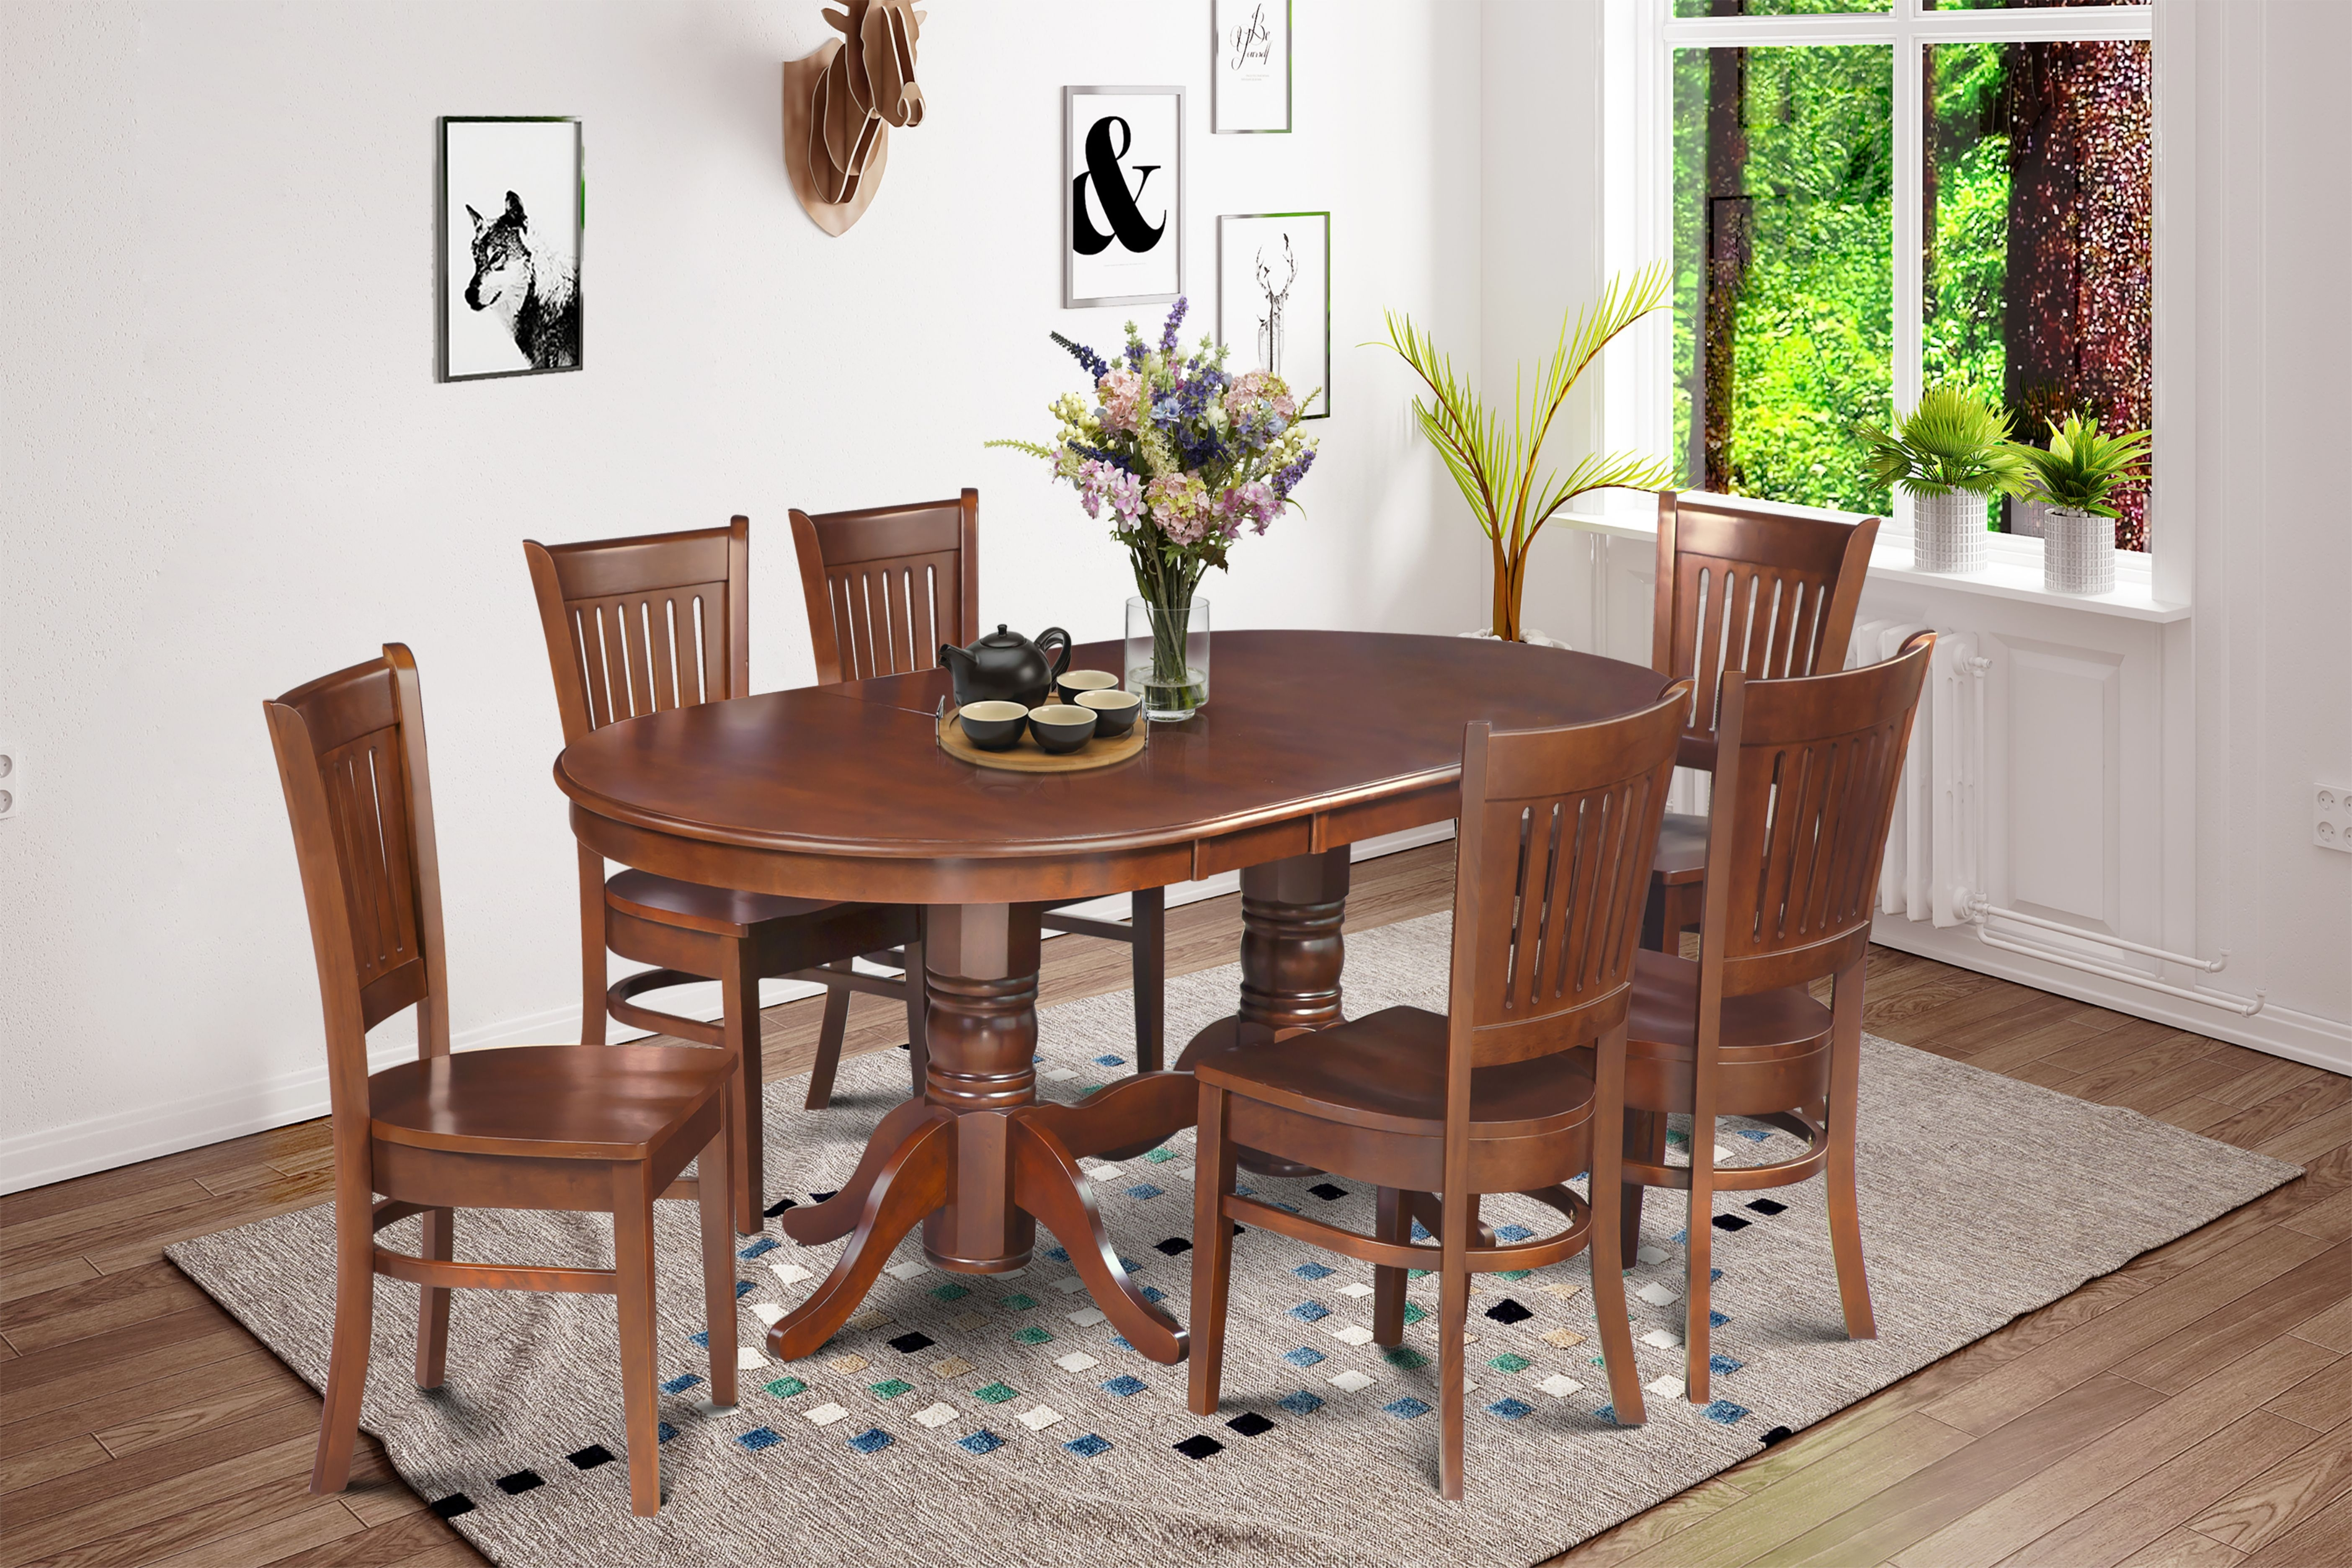 Chair, Upholstered, Table, Dining, Dining Set, Sets, Table, Living Regarding Most Recently Released Portland 78 Inch Dining Tables (Image 6 of 20)